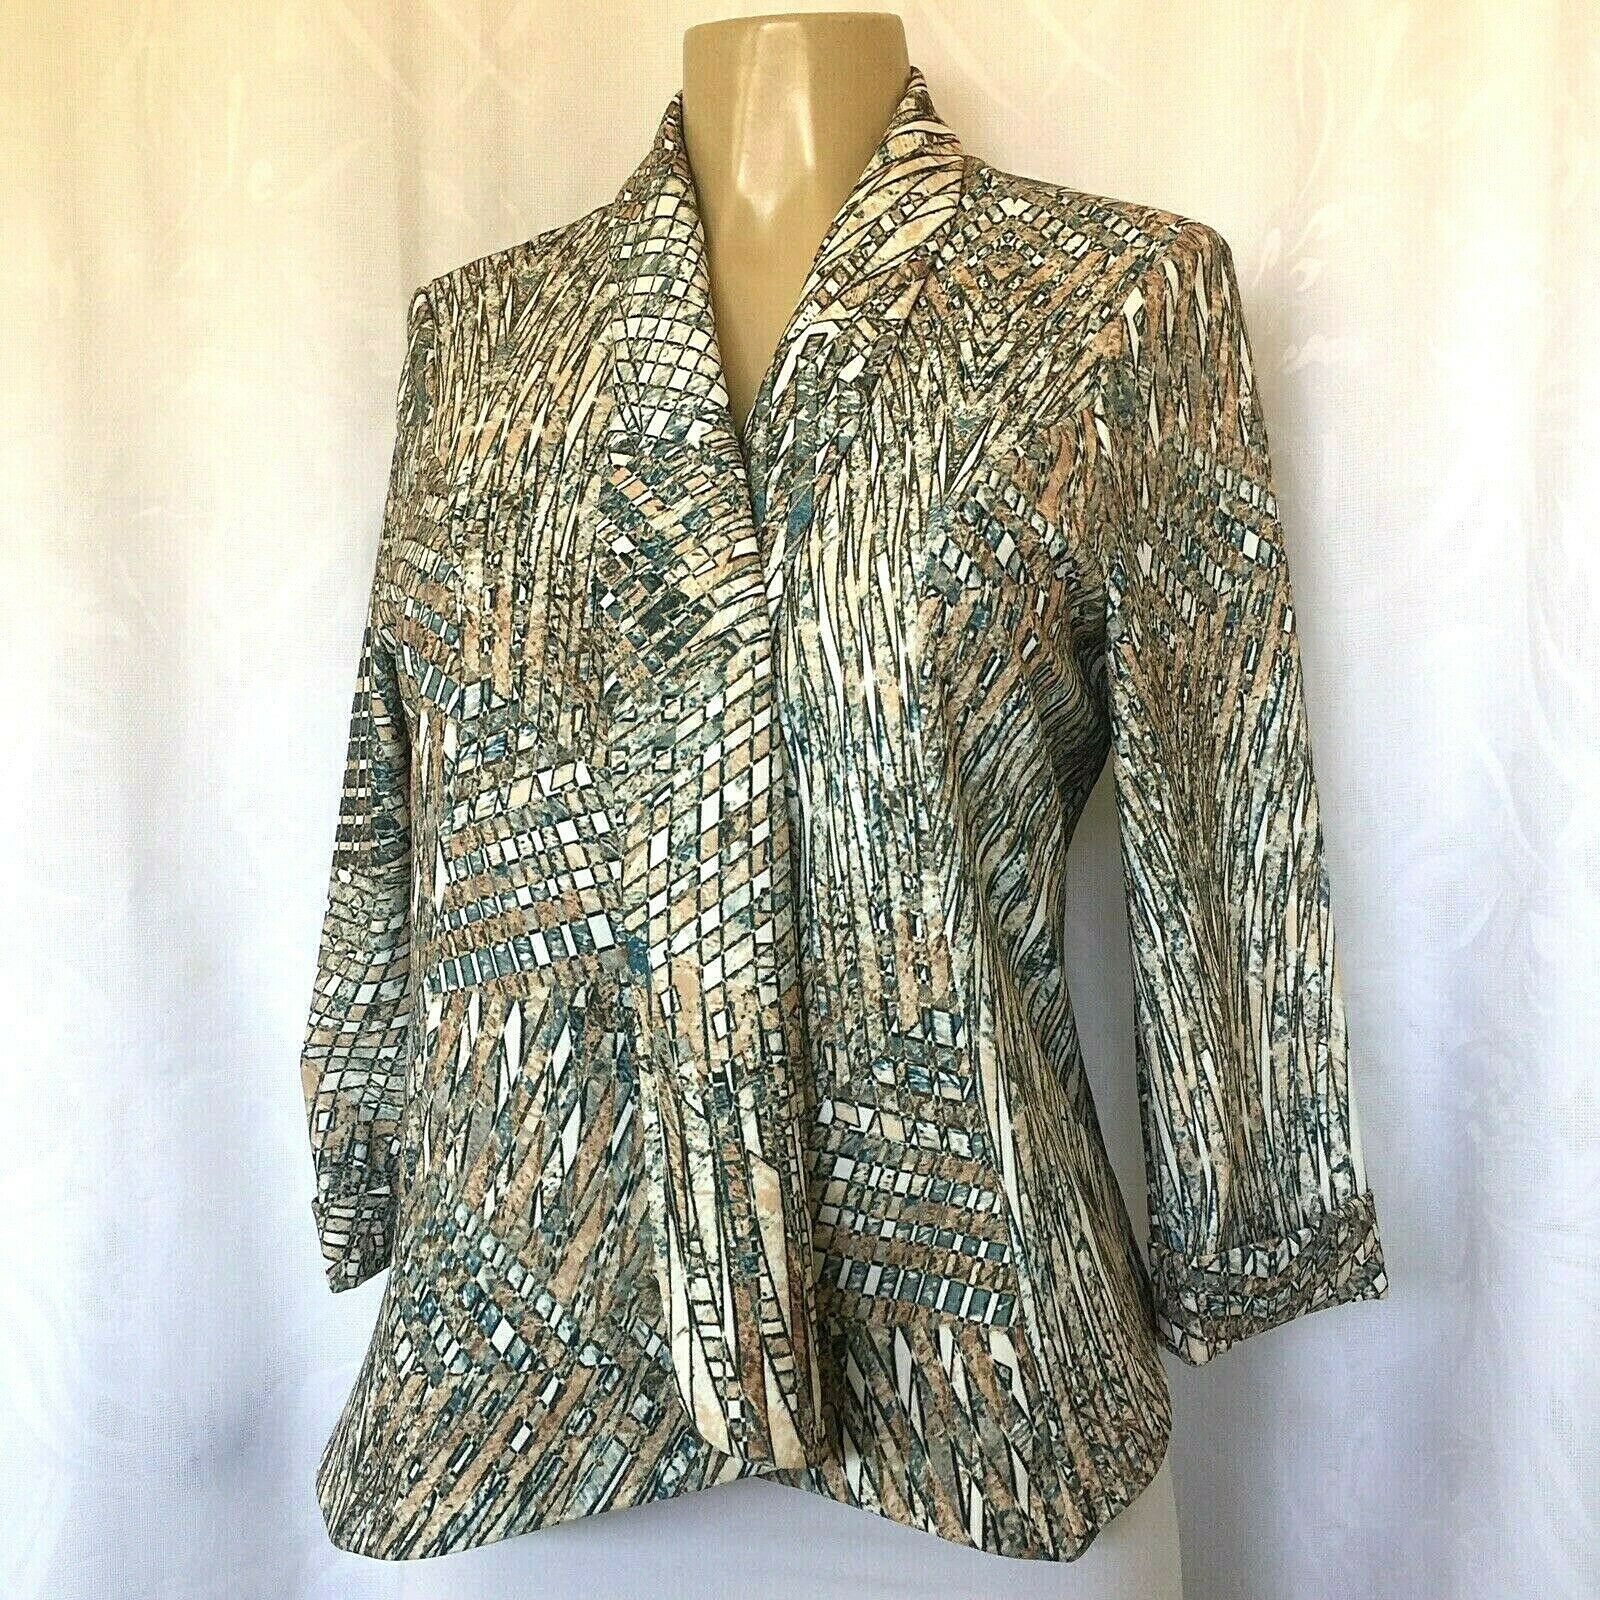 Alberto Makali Top Jacket Blazer Open Front Abstract Print Lined M 3 4 Sleeve